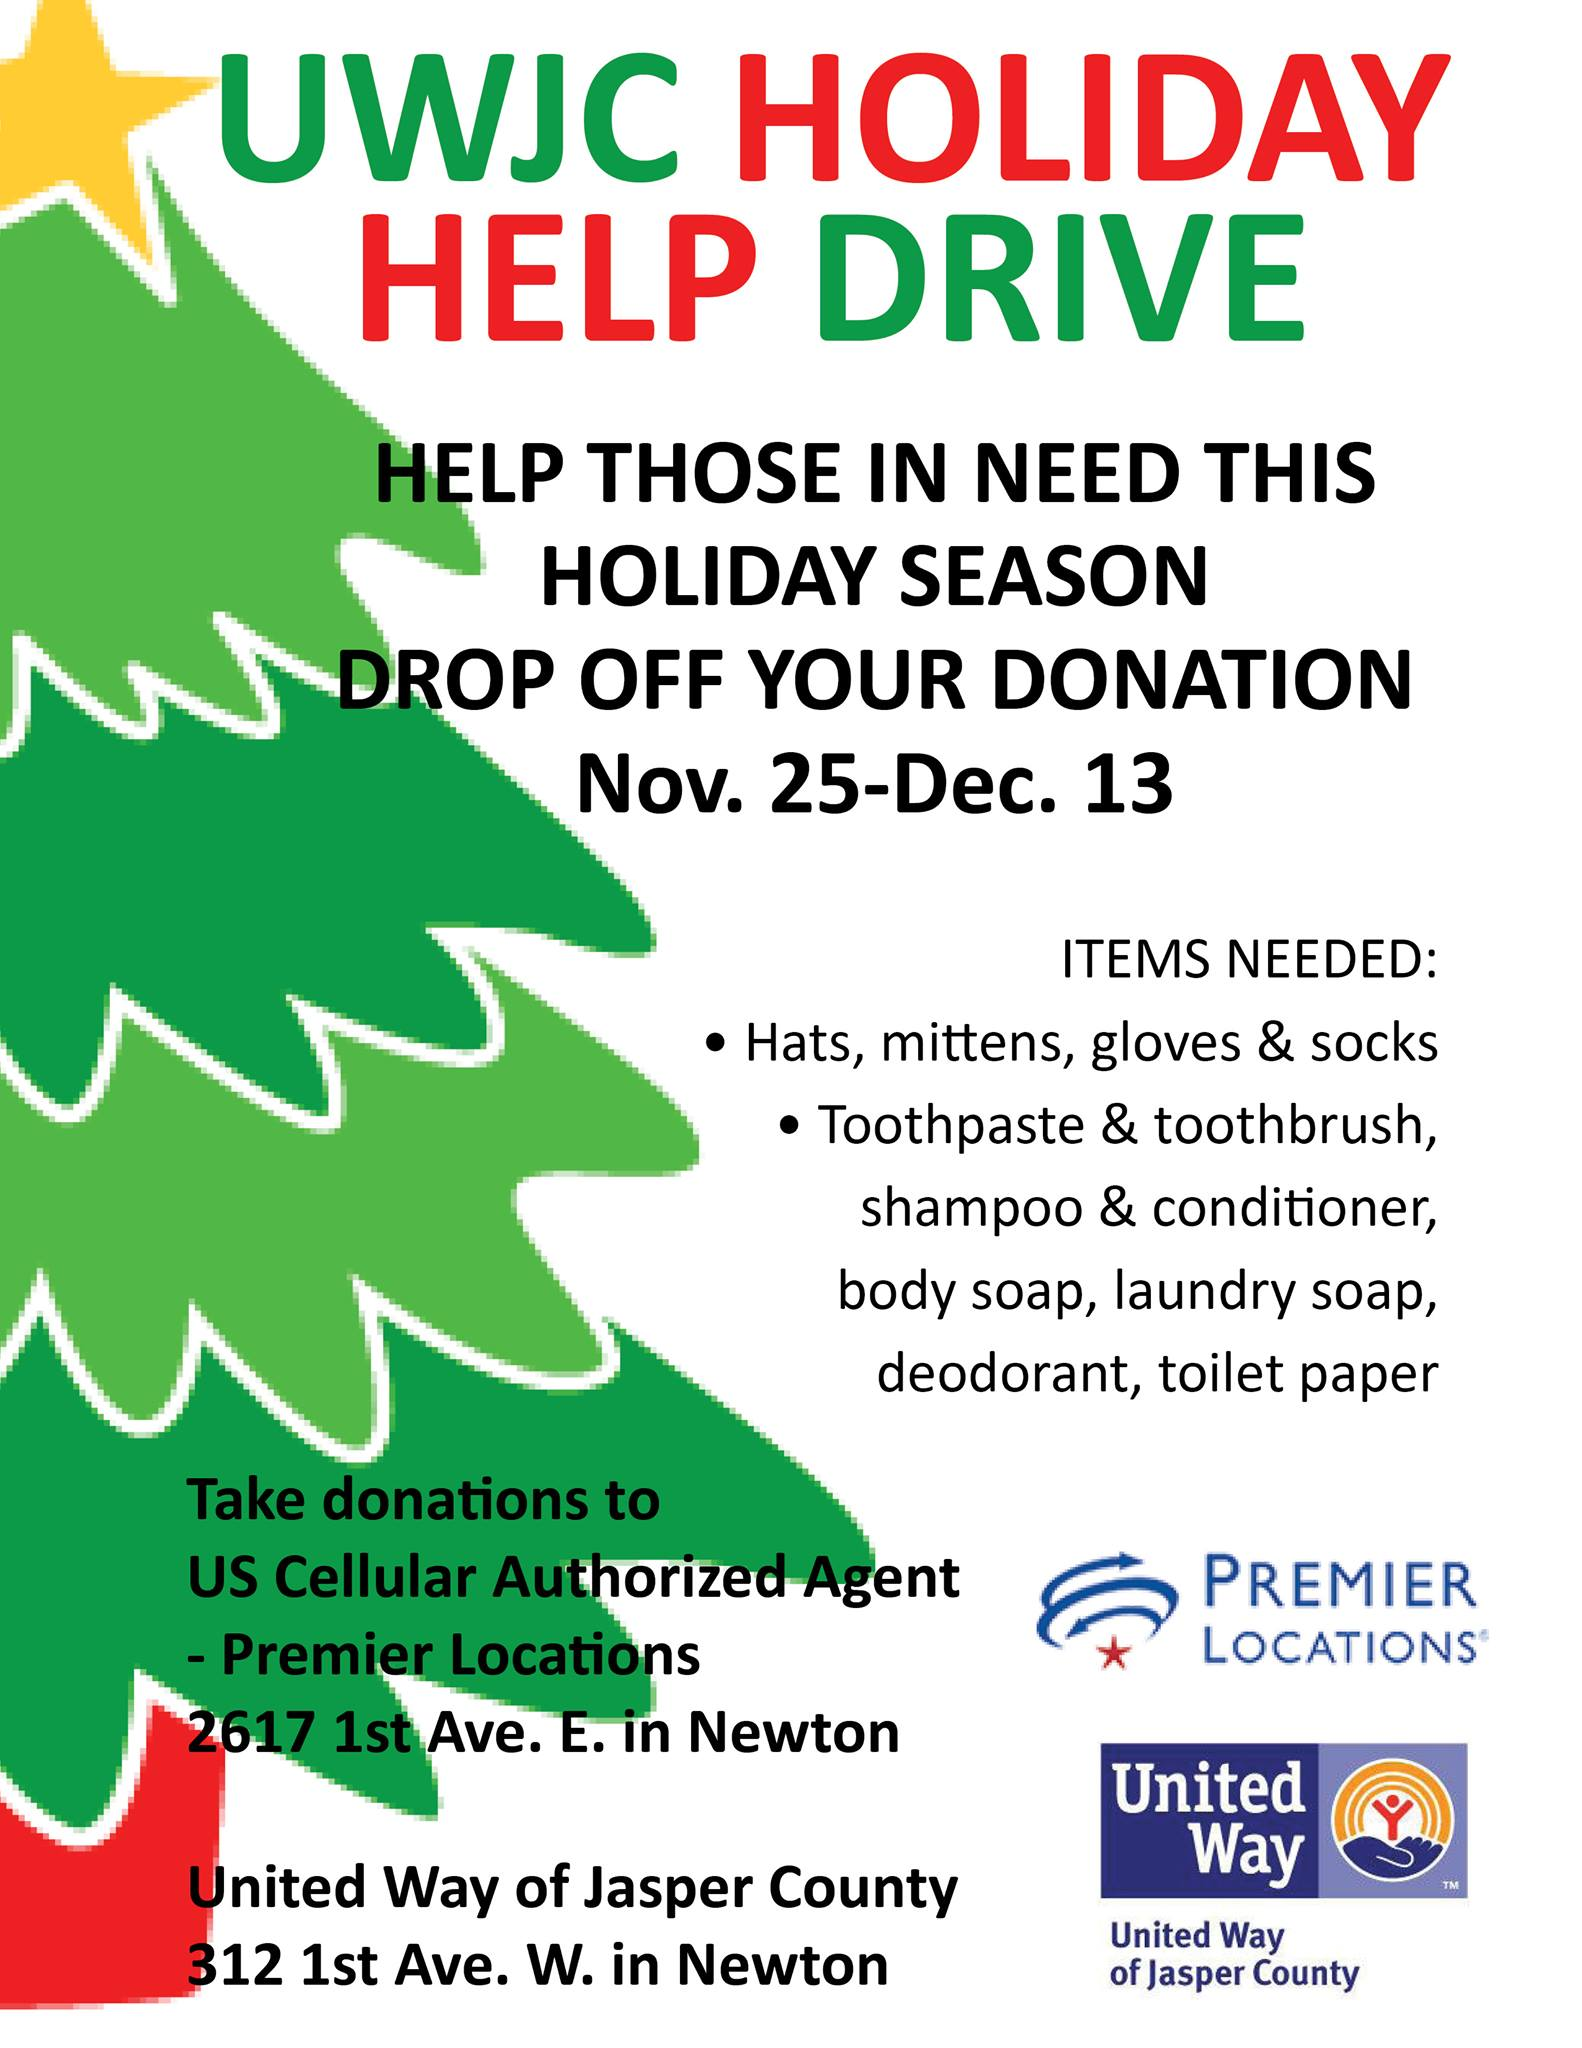 United Way of Jasper County's Annual Holiday Help Drive